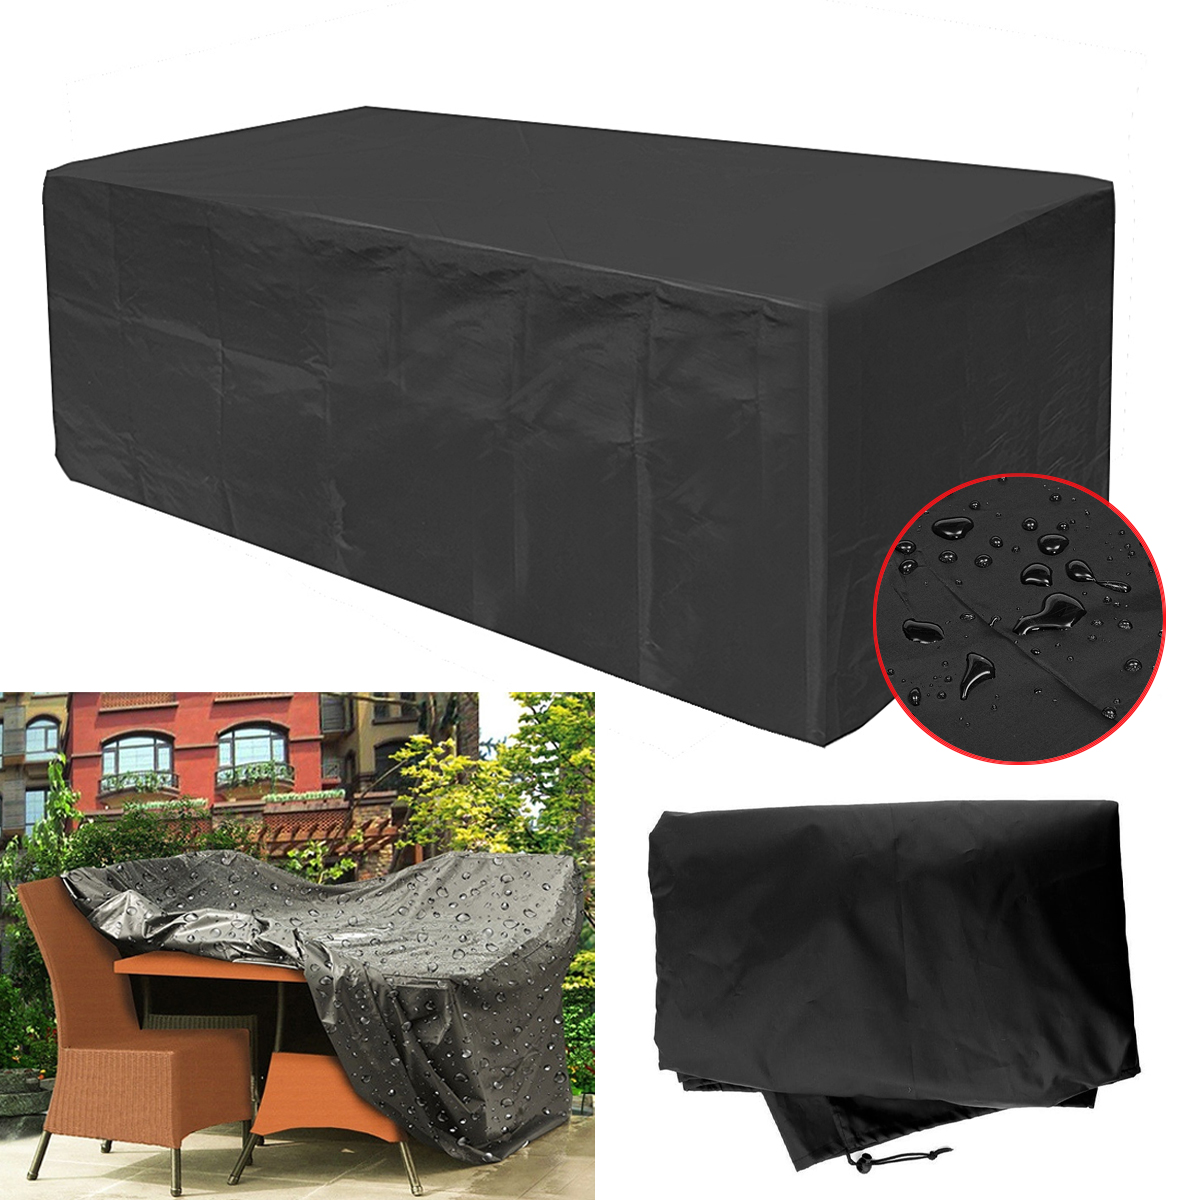 Groovy Us 29 29 42 Off Waterproof Oxford Garden Ratten Furniture Cover Extra Large Outdoor Patio Table Sofa Set Rain Snow Protection Dustproof Covers In Machost Co Dining Chair Design Ideas Machostcouk